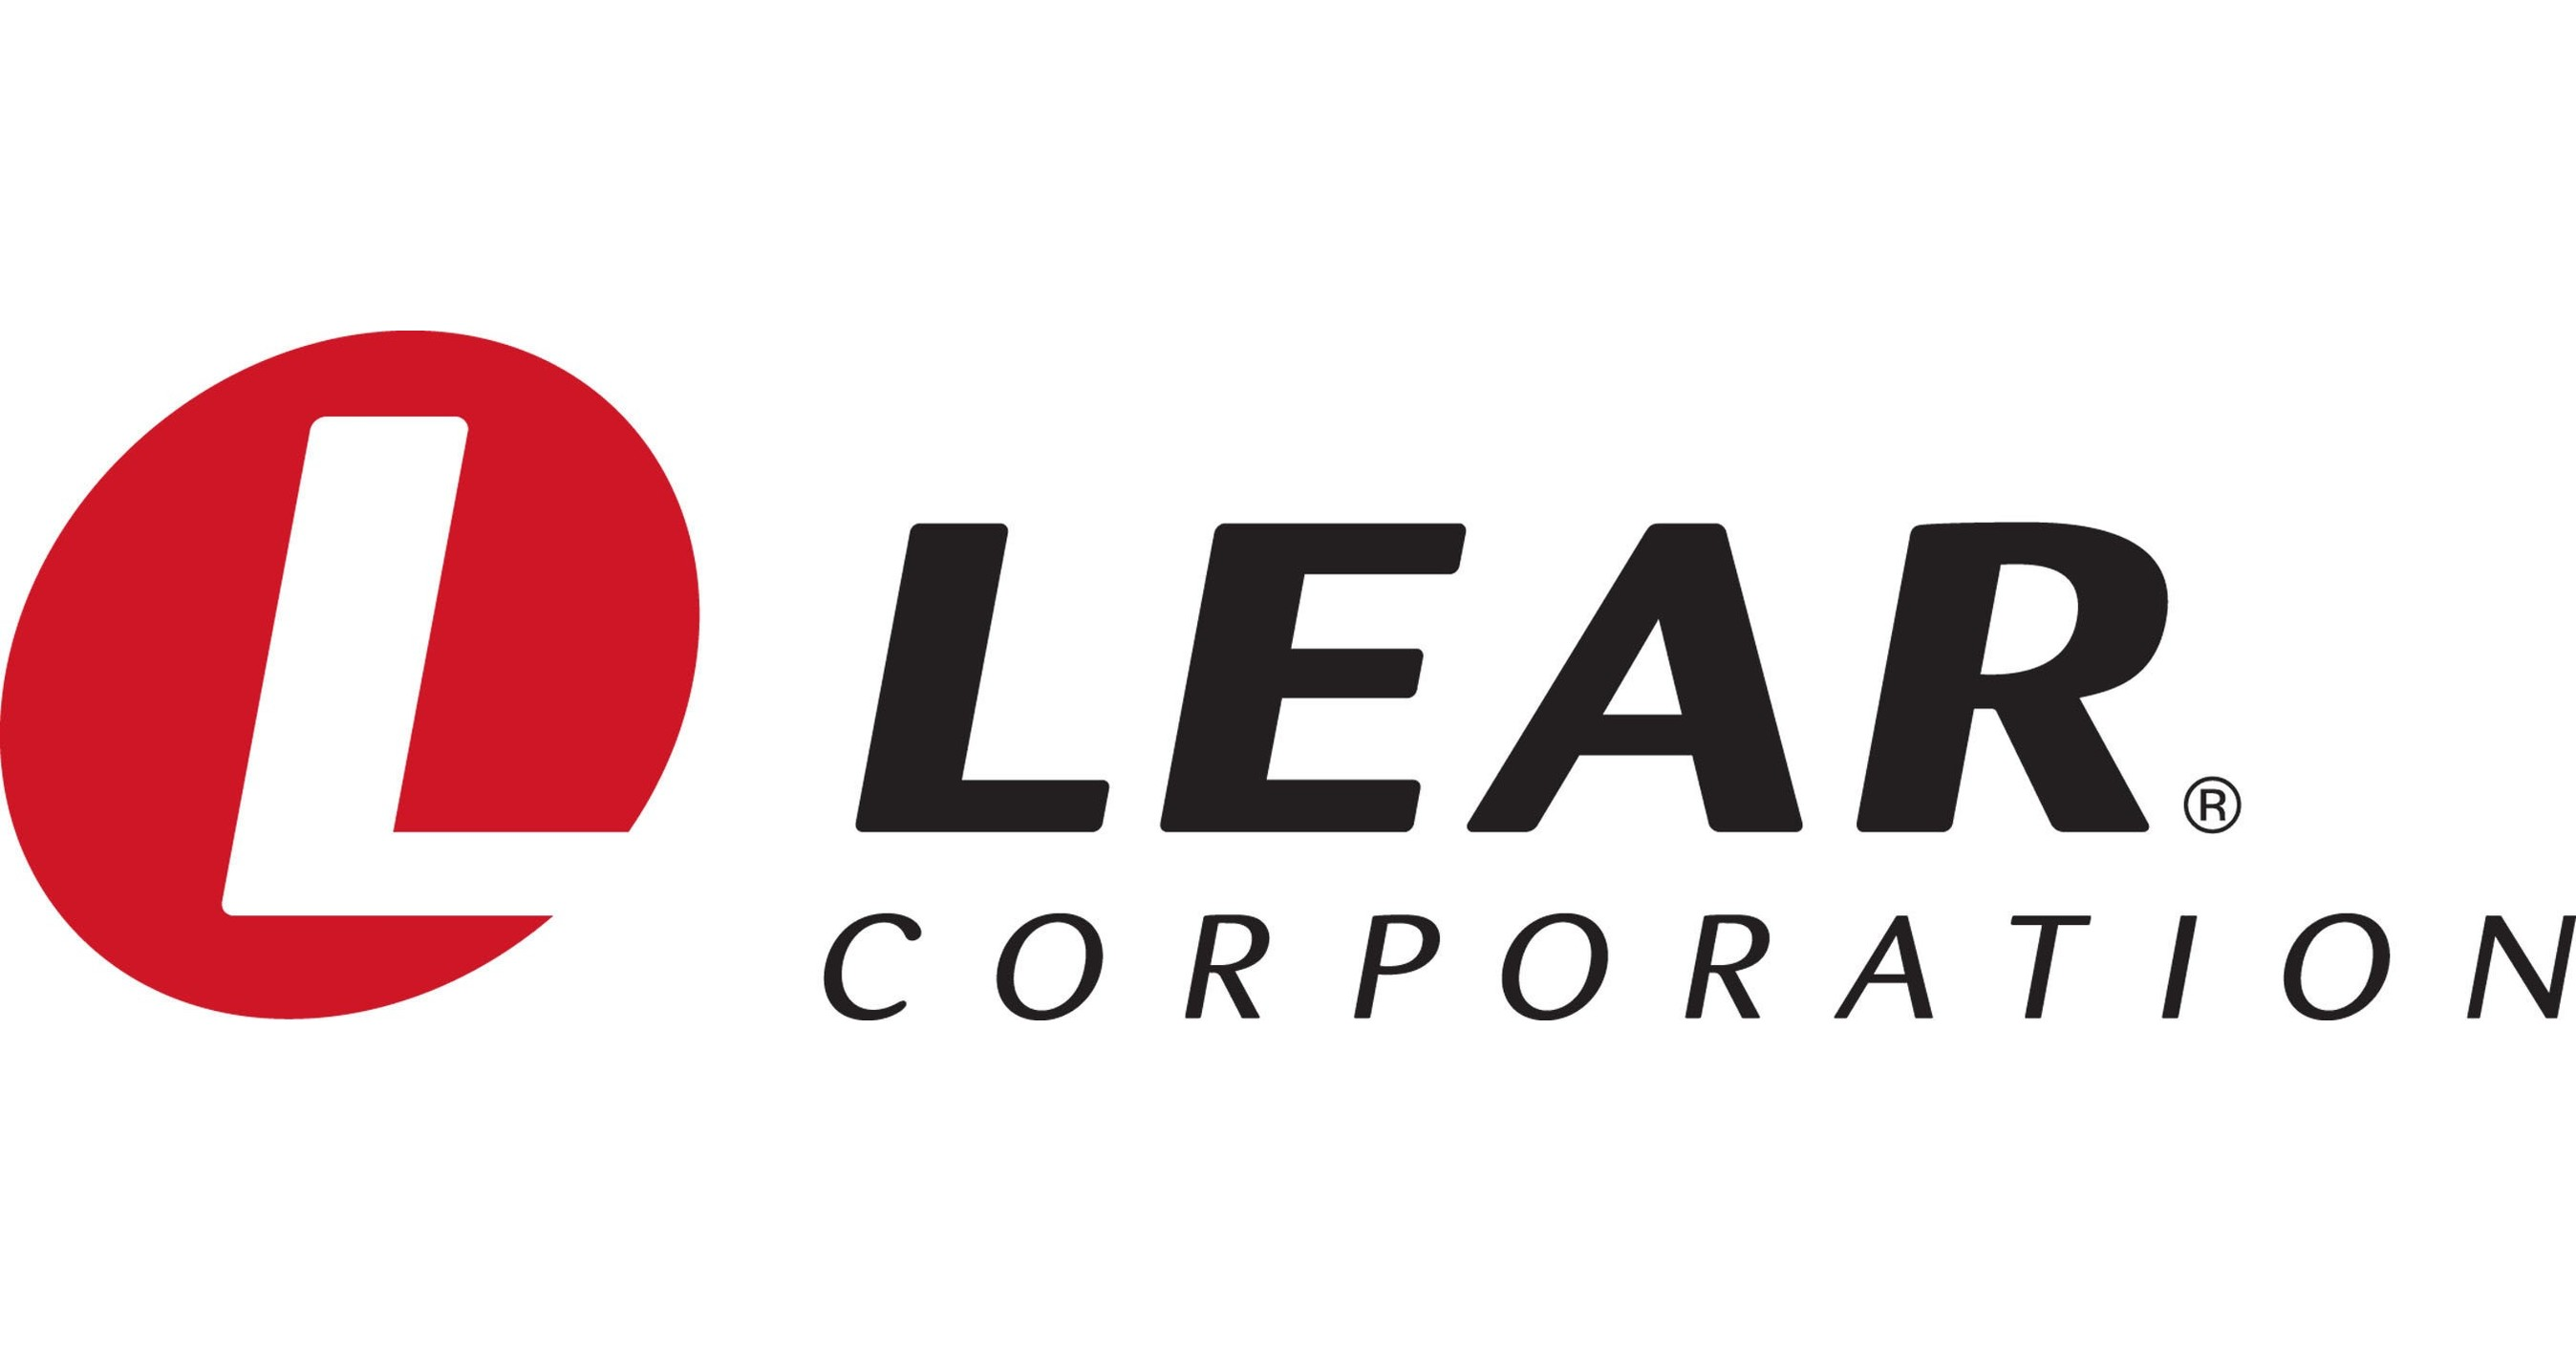 Lear Corporation to Acquire Xevo, a Leader in Connected Car